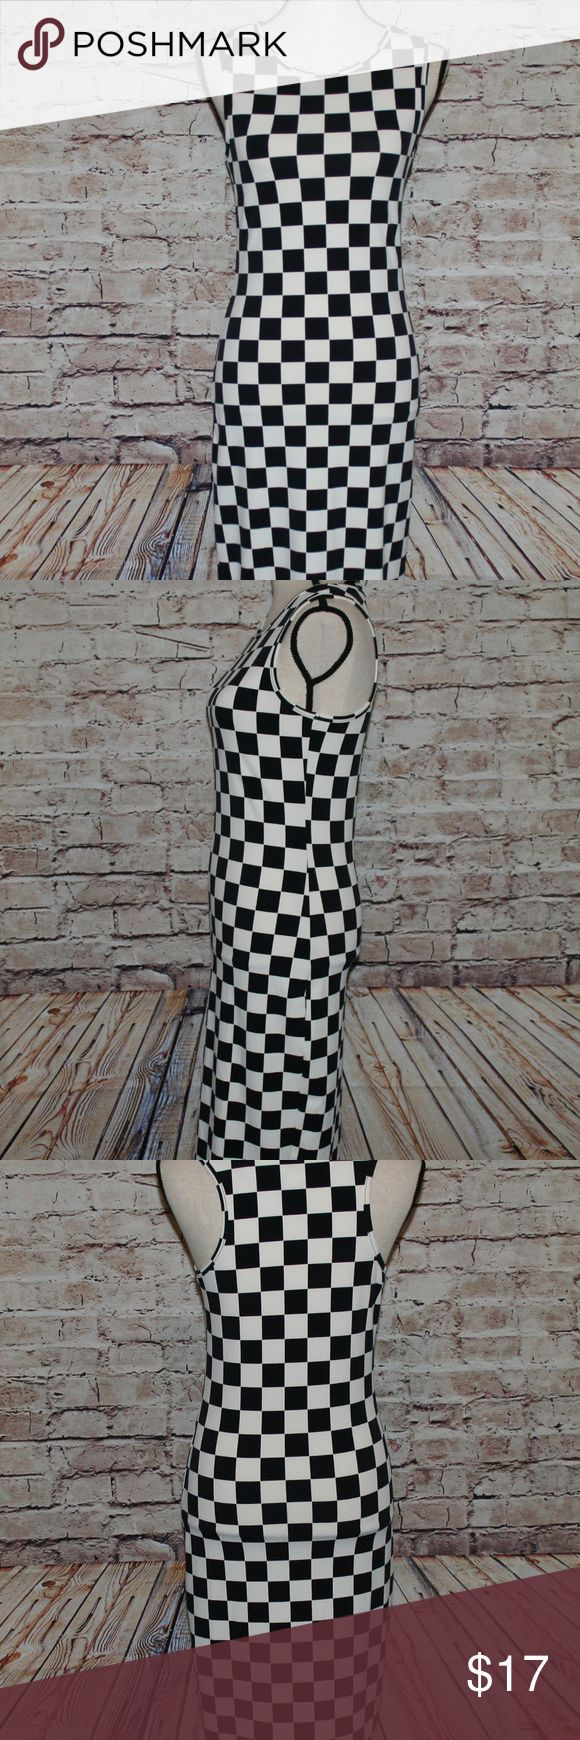 """FOREVER 21 Black and White Checkered Sheath Dress FOREVER 21 Black and White Checkered Sheath Tank Dress with Stretch Women's Medium  Sleeveless sheath dress Black and white checkered design Below the knee length 91% Polyester 9% Spandex Great condition!   **All items are carefully packaged and ship within one business day of confirmed payment!  Measurements: Bust: 32 Waist: 29""""  Length: 40""""       THANKS FOR STOPPING BY THE SMART SHOPPE! Forever 21 Dresses"""